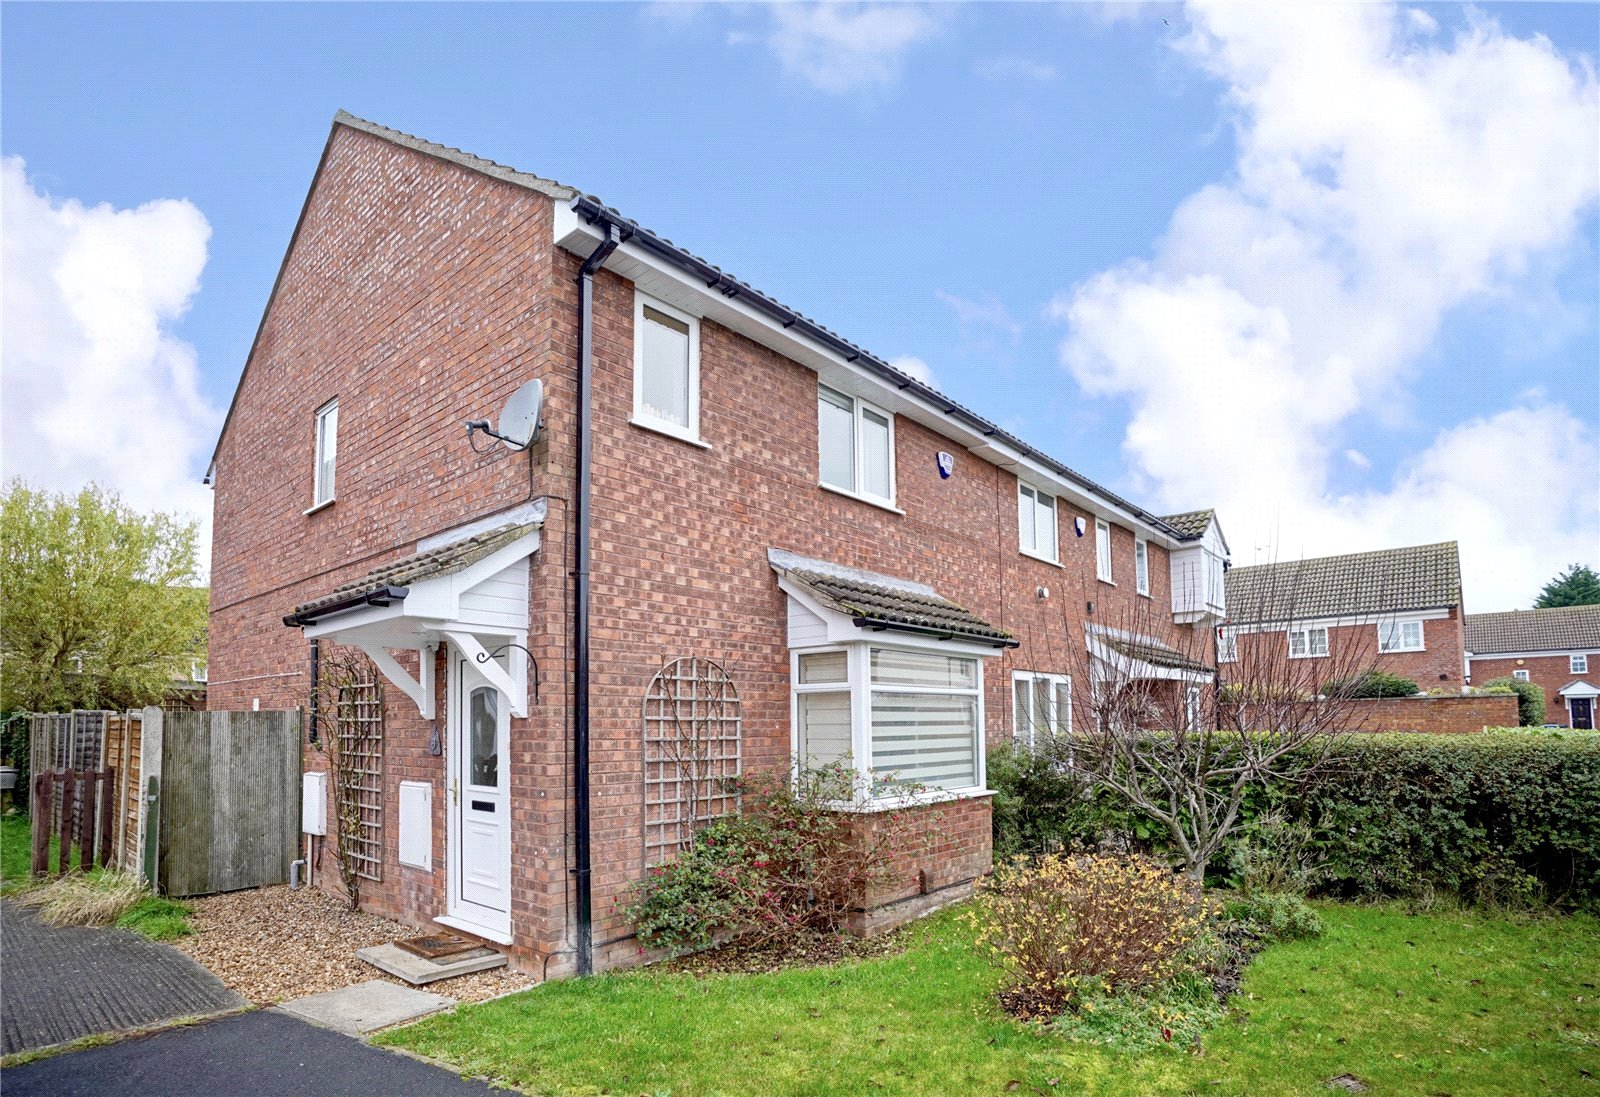 3 bed house for sale in St. Ives, PE27 3HJ 0